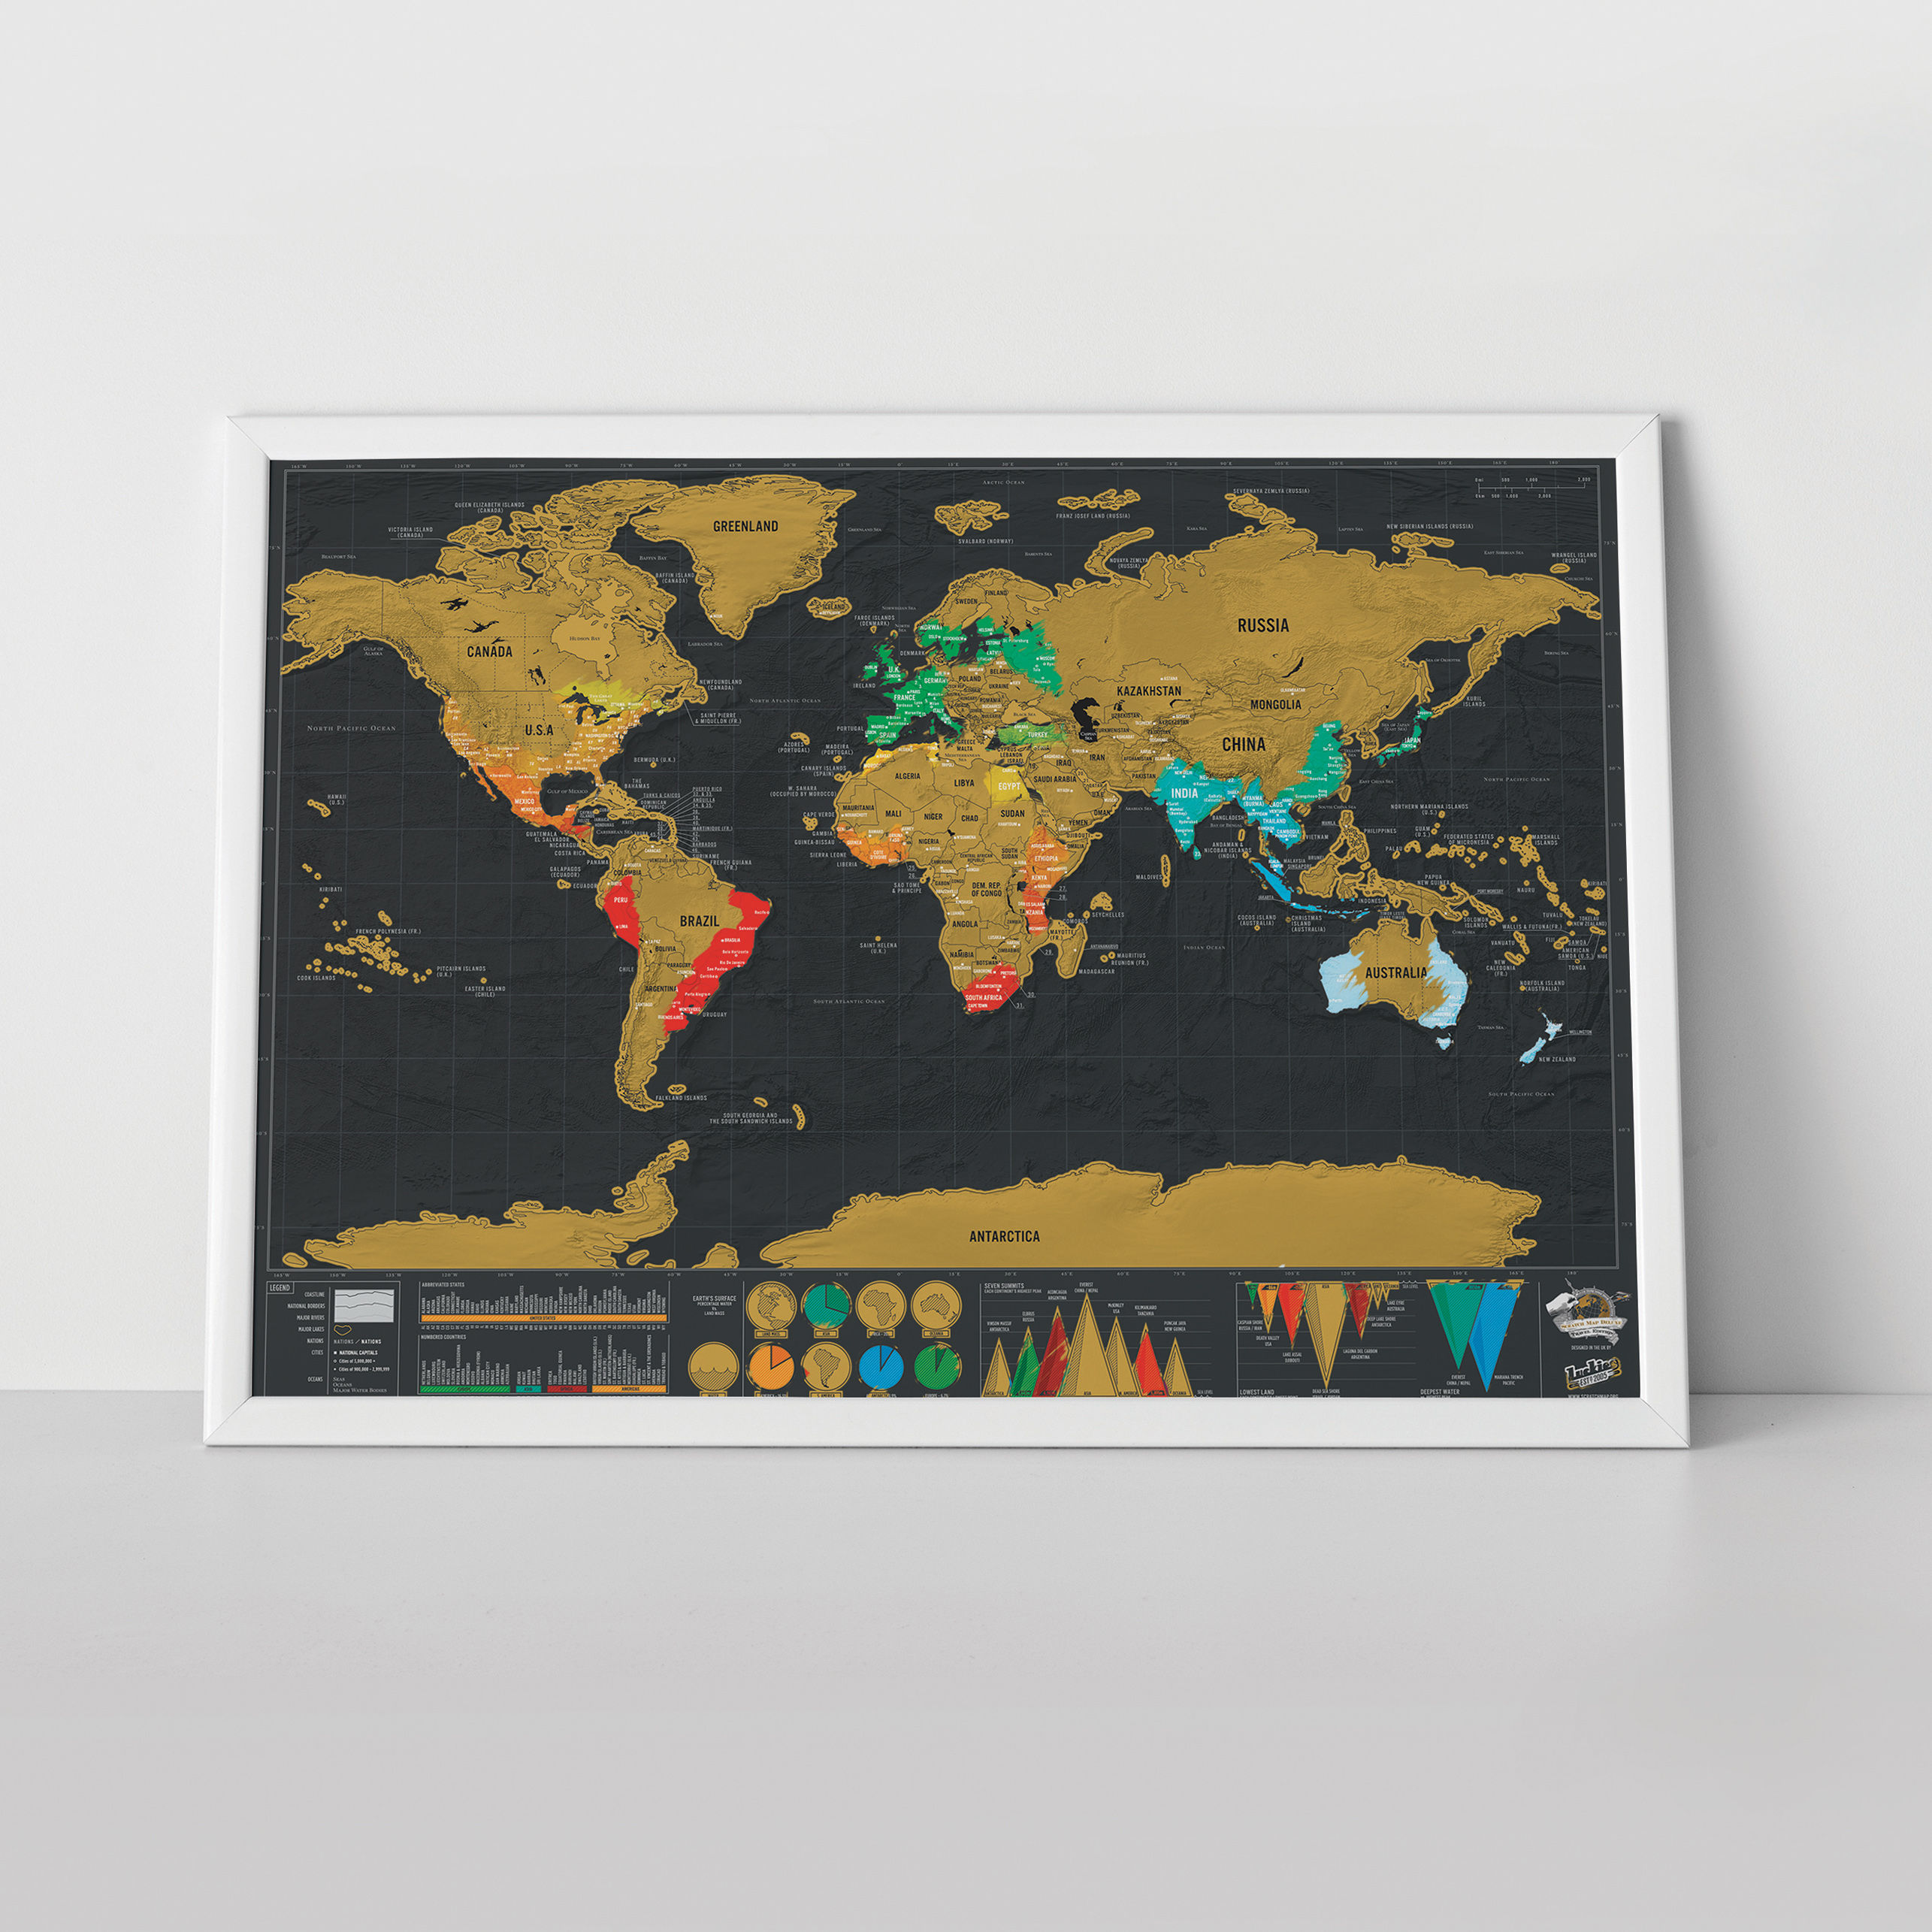 poster scratch map deluxe carte du monde gratter 82 x 59 cm noir or luckies. Black Bedroom Furniture Sets. Home Design Ideas